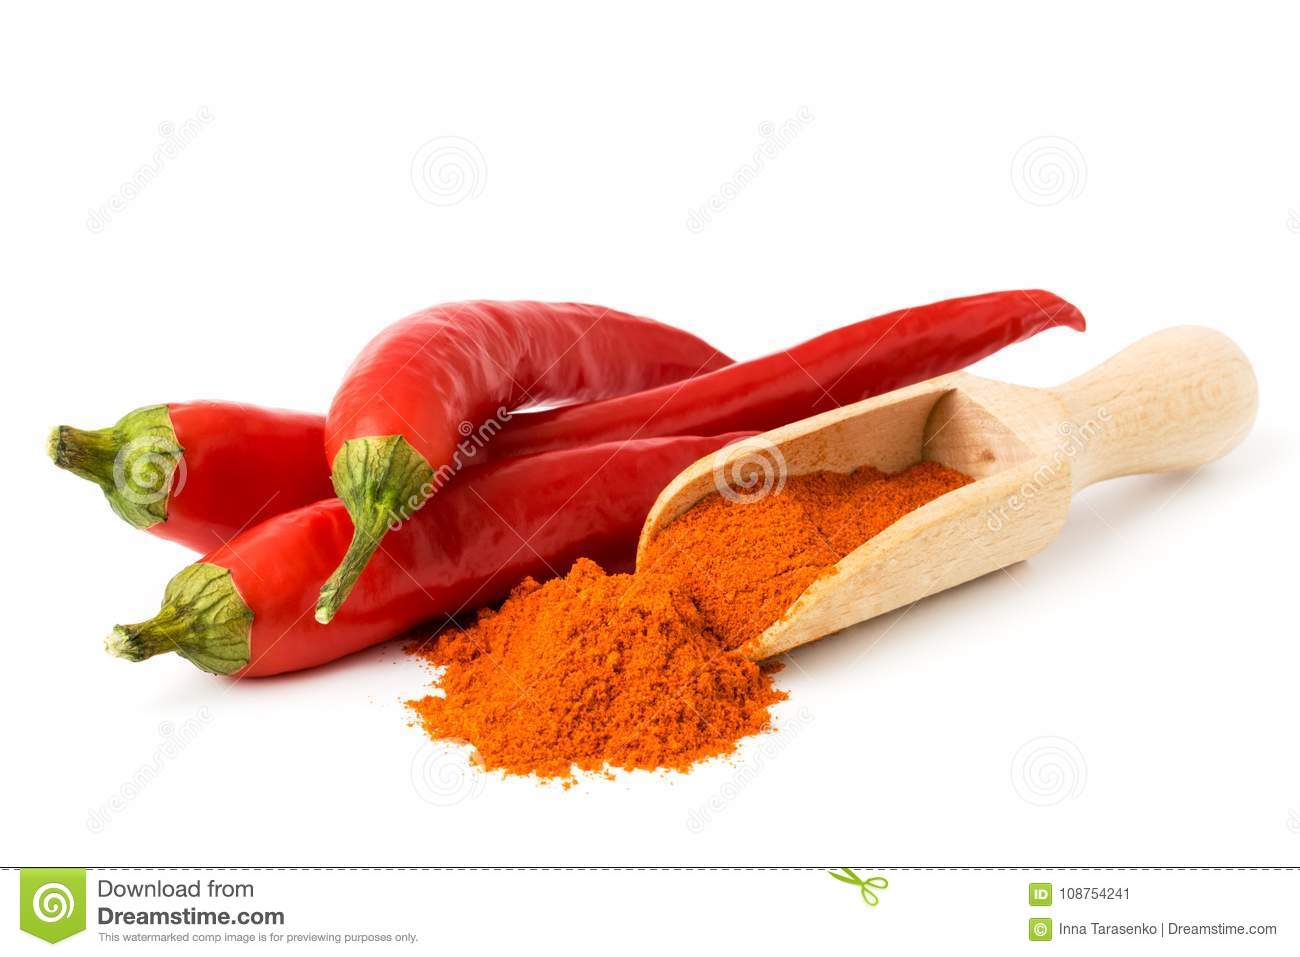 Red chili pepper and ground pepper in a wooden spoon, on white background.